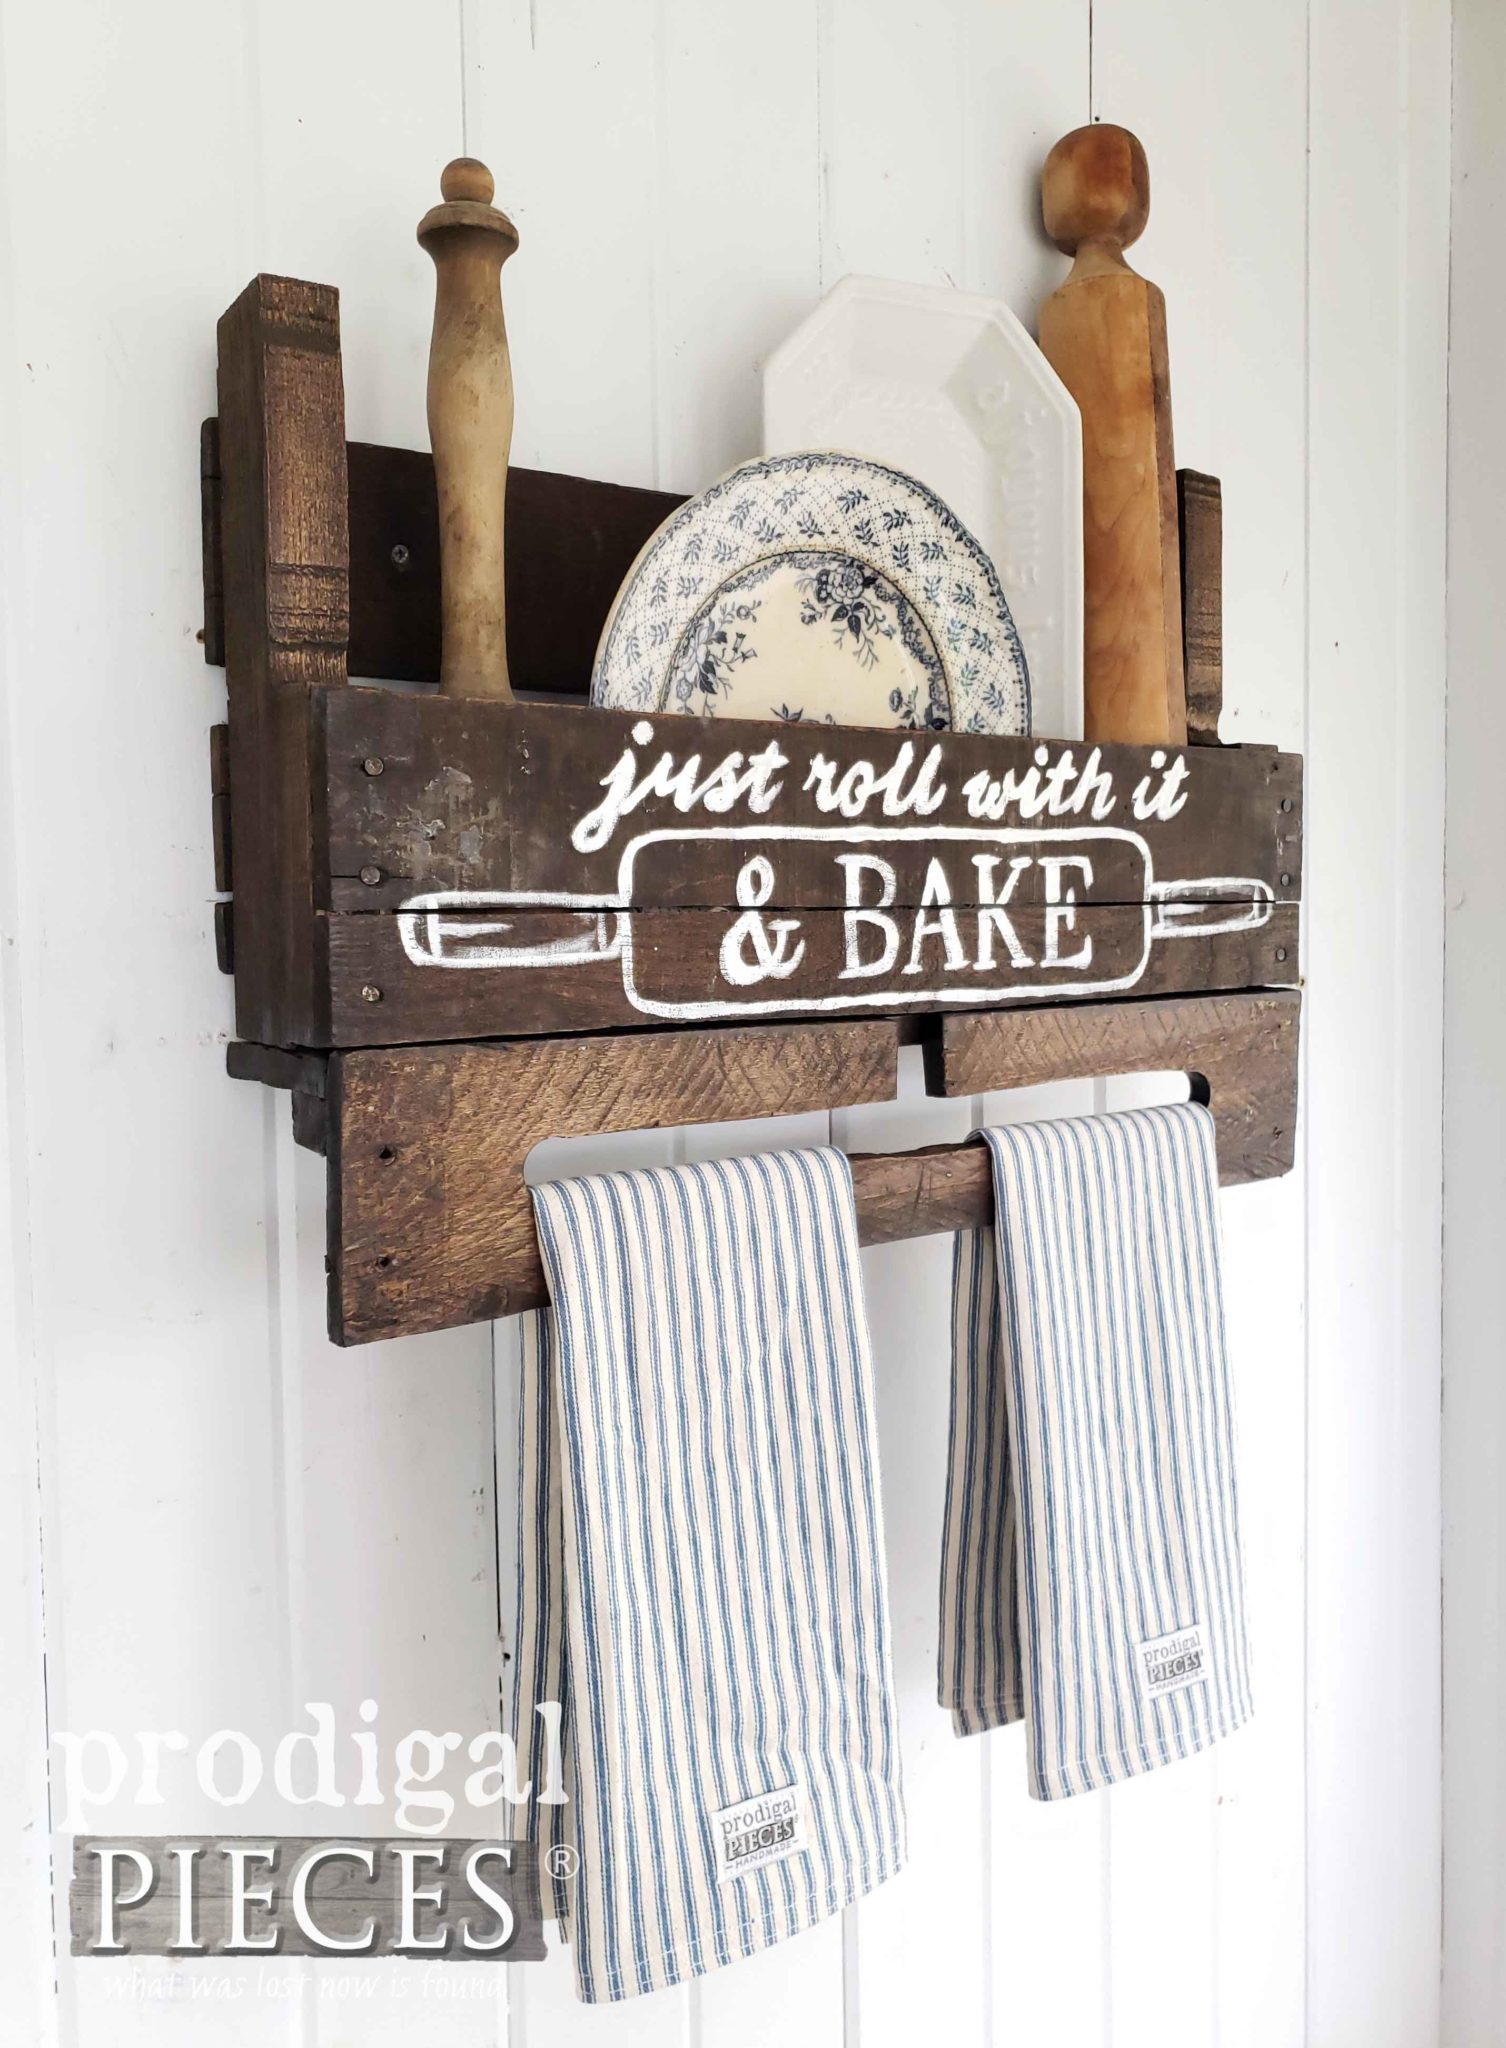 Handmade Farmhouse Towel Rack with Typography & Ticking Stripe Towels Created by Larissa of Prodigal Pieces | prodigalpieces.com #prodigalpieces #diy #farmhouse #home #homedecor #handmade